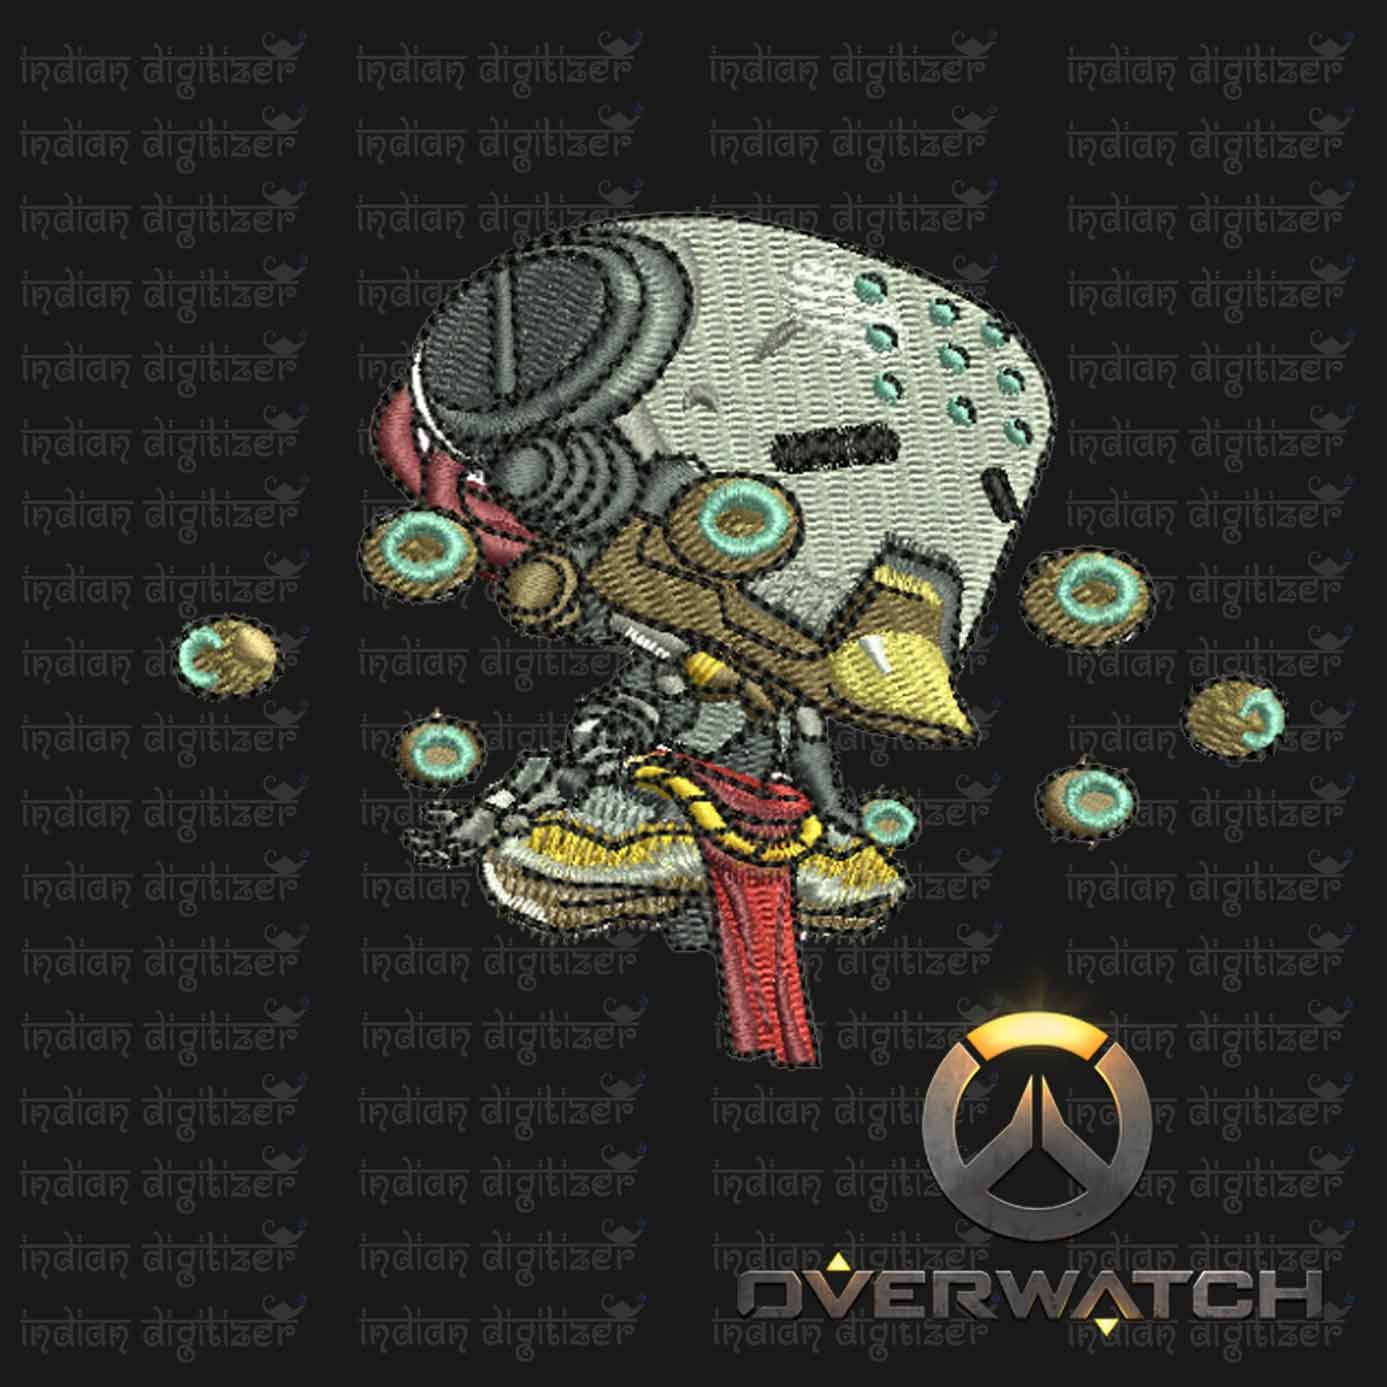 Overwatch Embroidery Designs - Zenyatta individual character for 4x4in hoop - resizable with freely downloadable software.